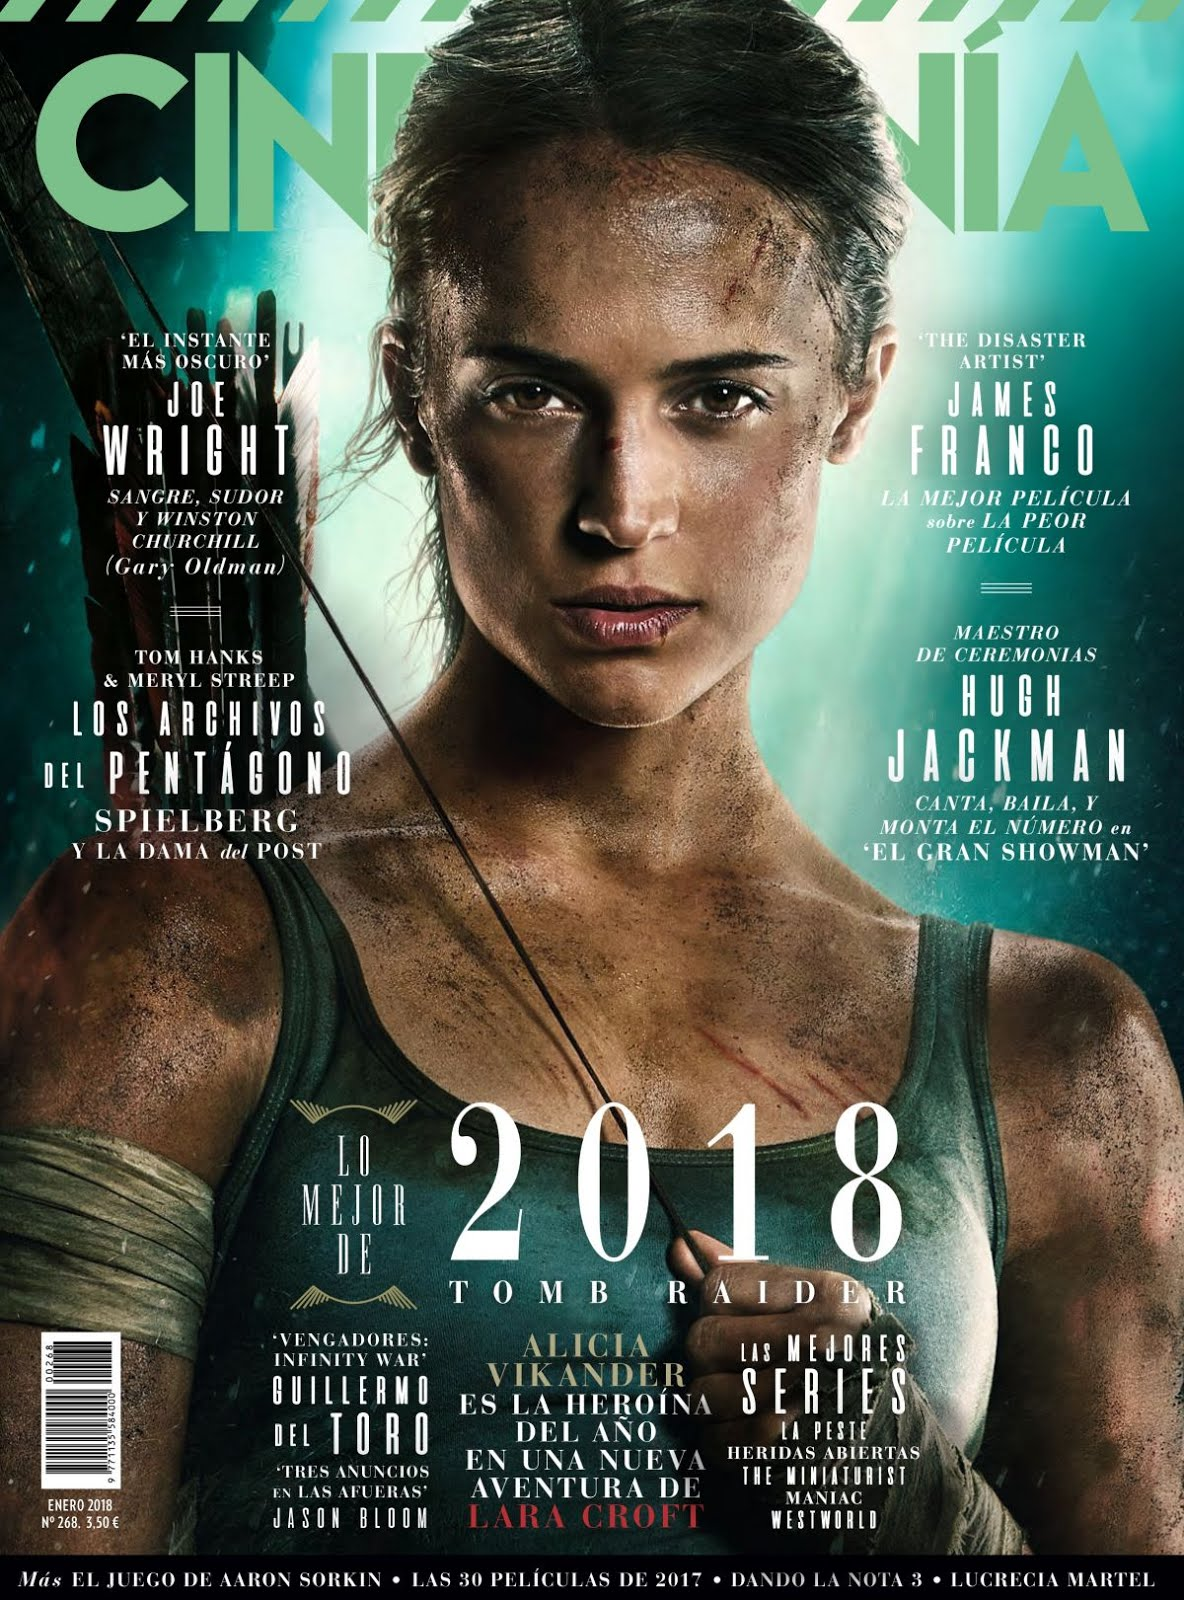 Photo Shoot of Tomb Raider actress Alicia Vikander In Cinemania Magazine January 2018